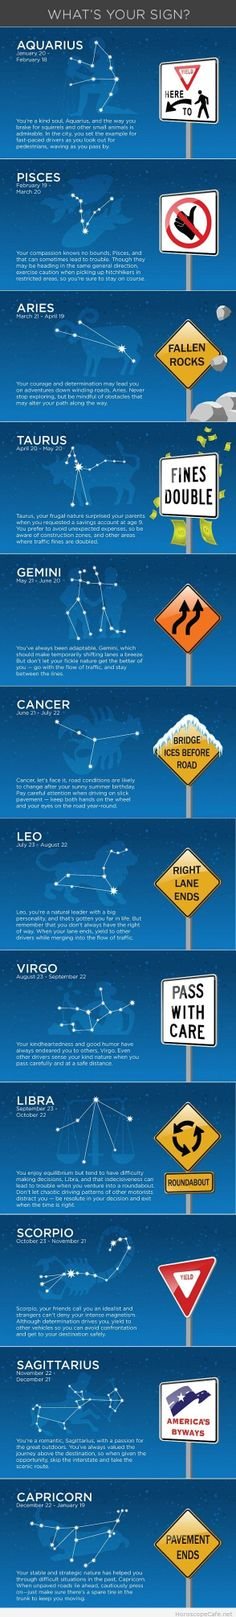 Whats your sign?